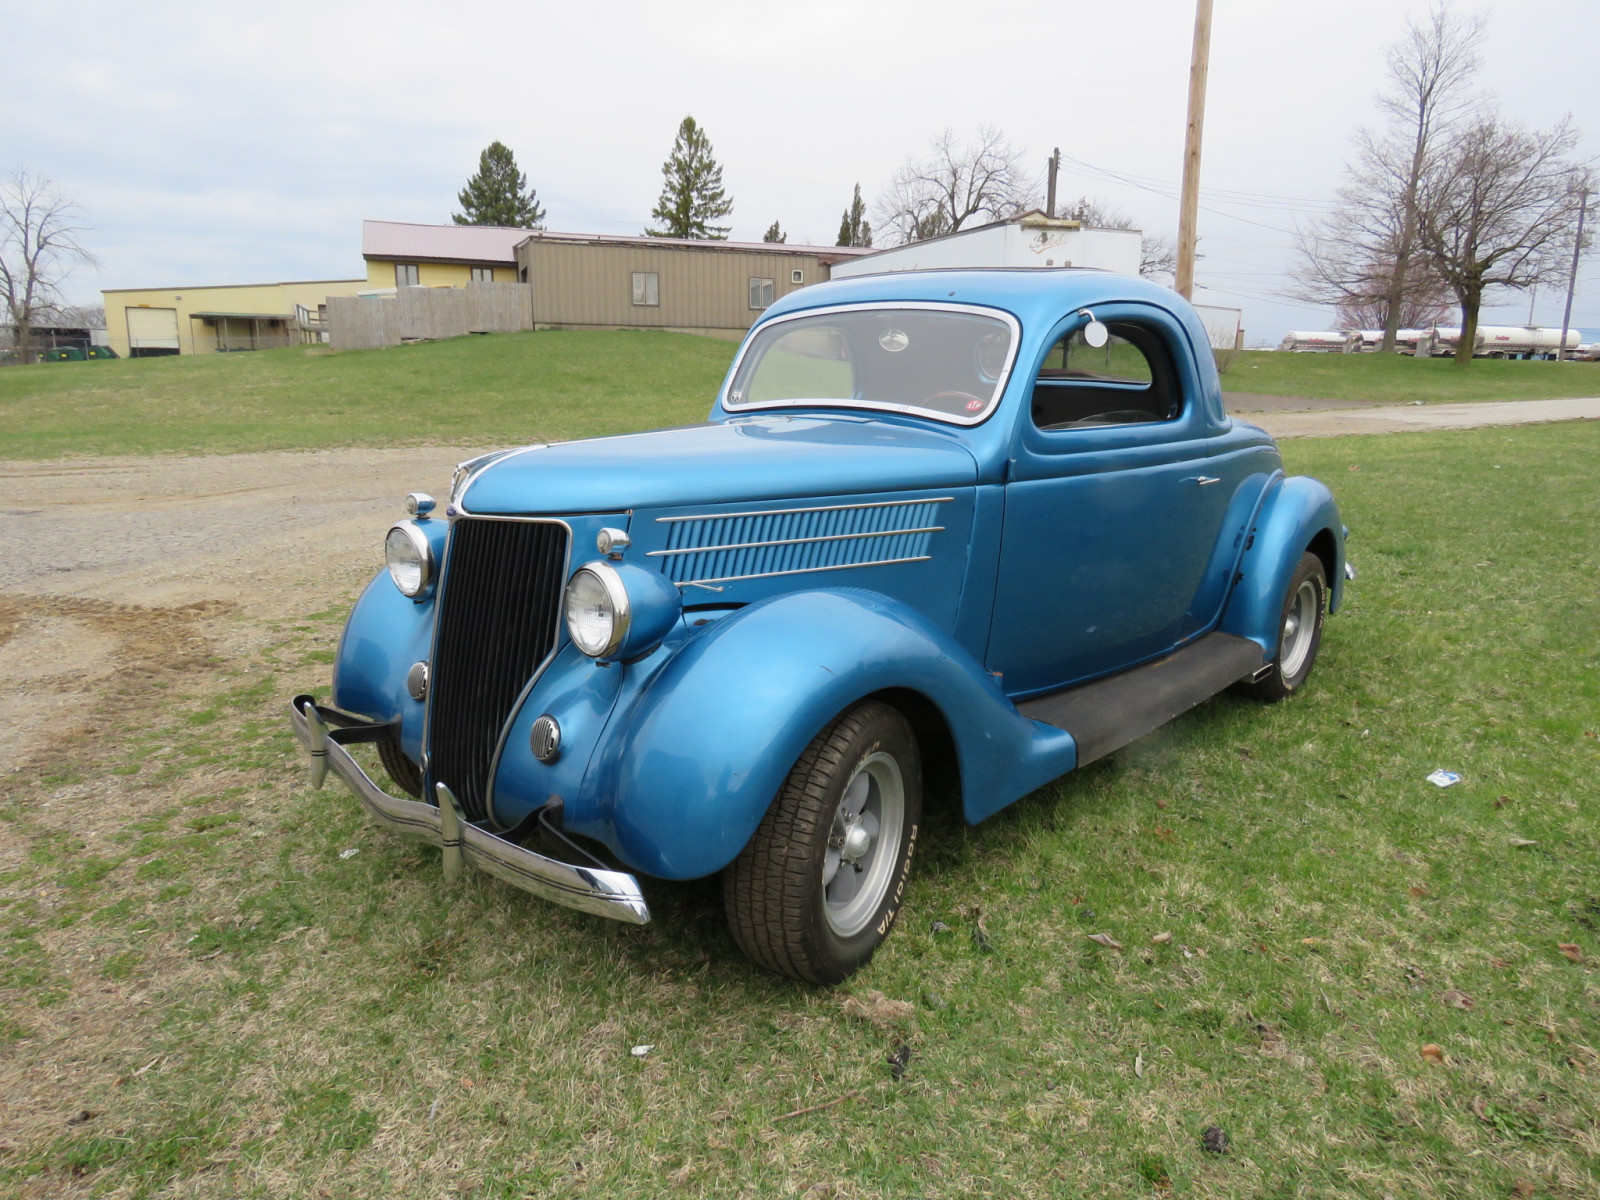 Rare 1936 Ford 3 Window Coupe - Image 3